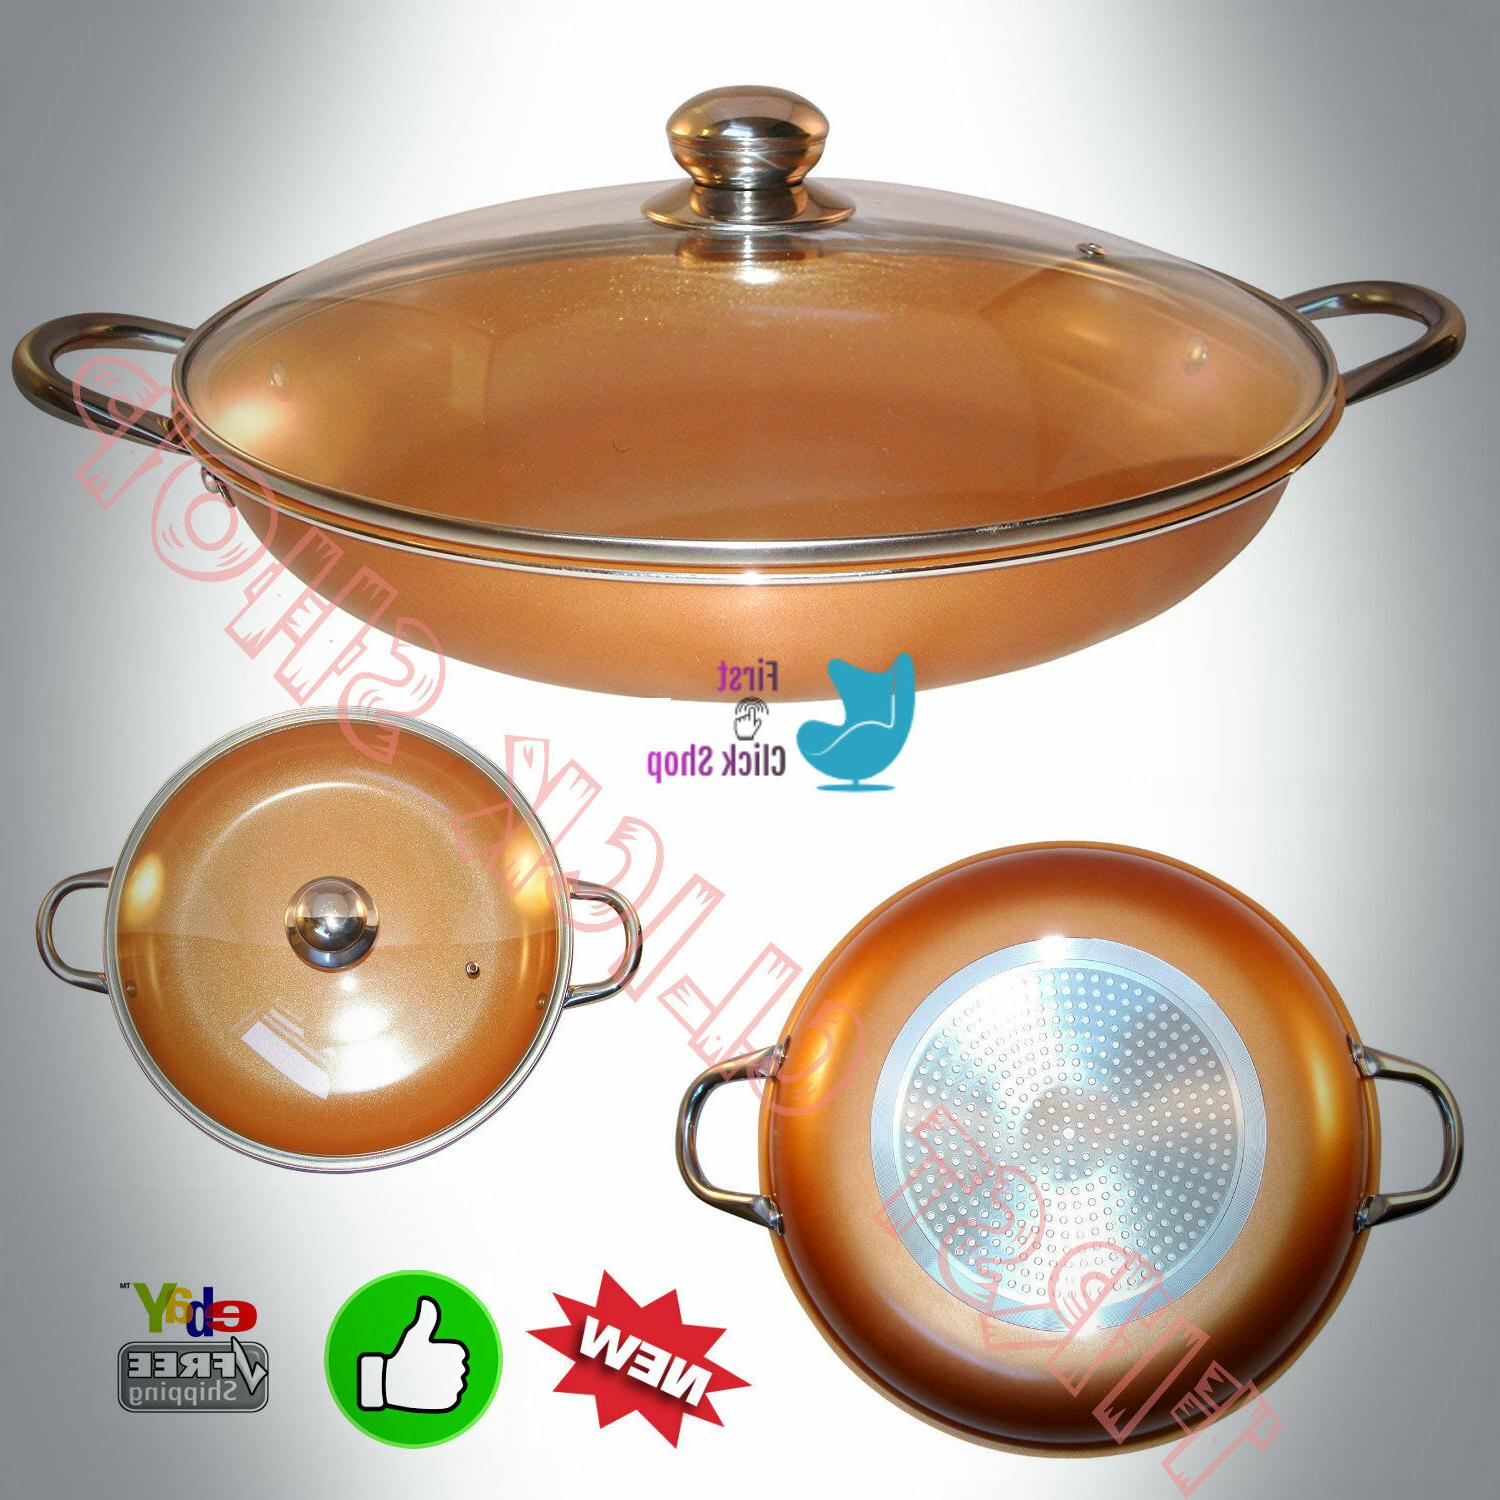 Cooper Frying Pan 10.5 Inch With Glass Lid, Non Sick Ceramic